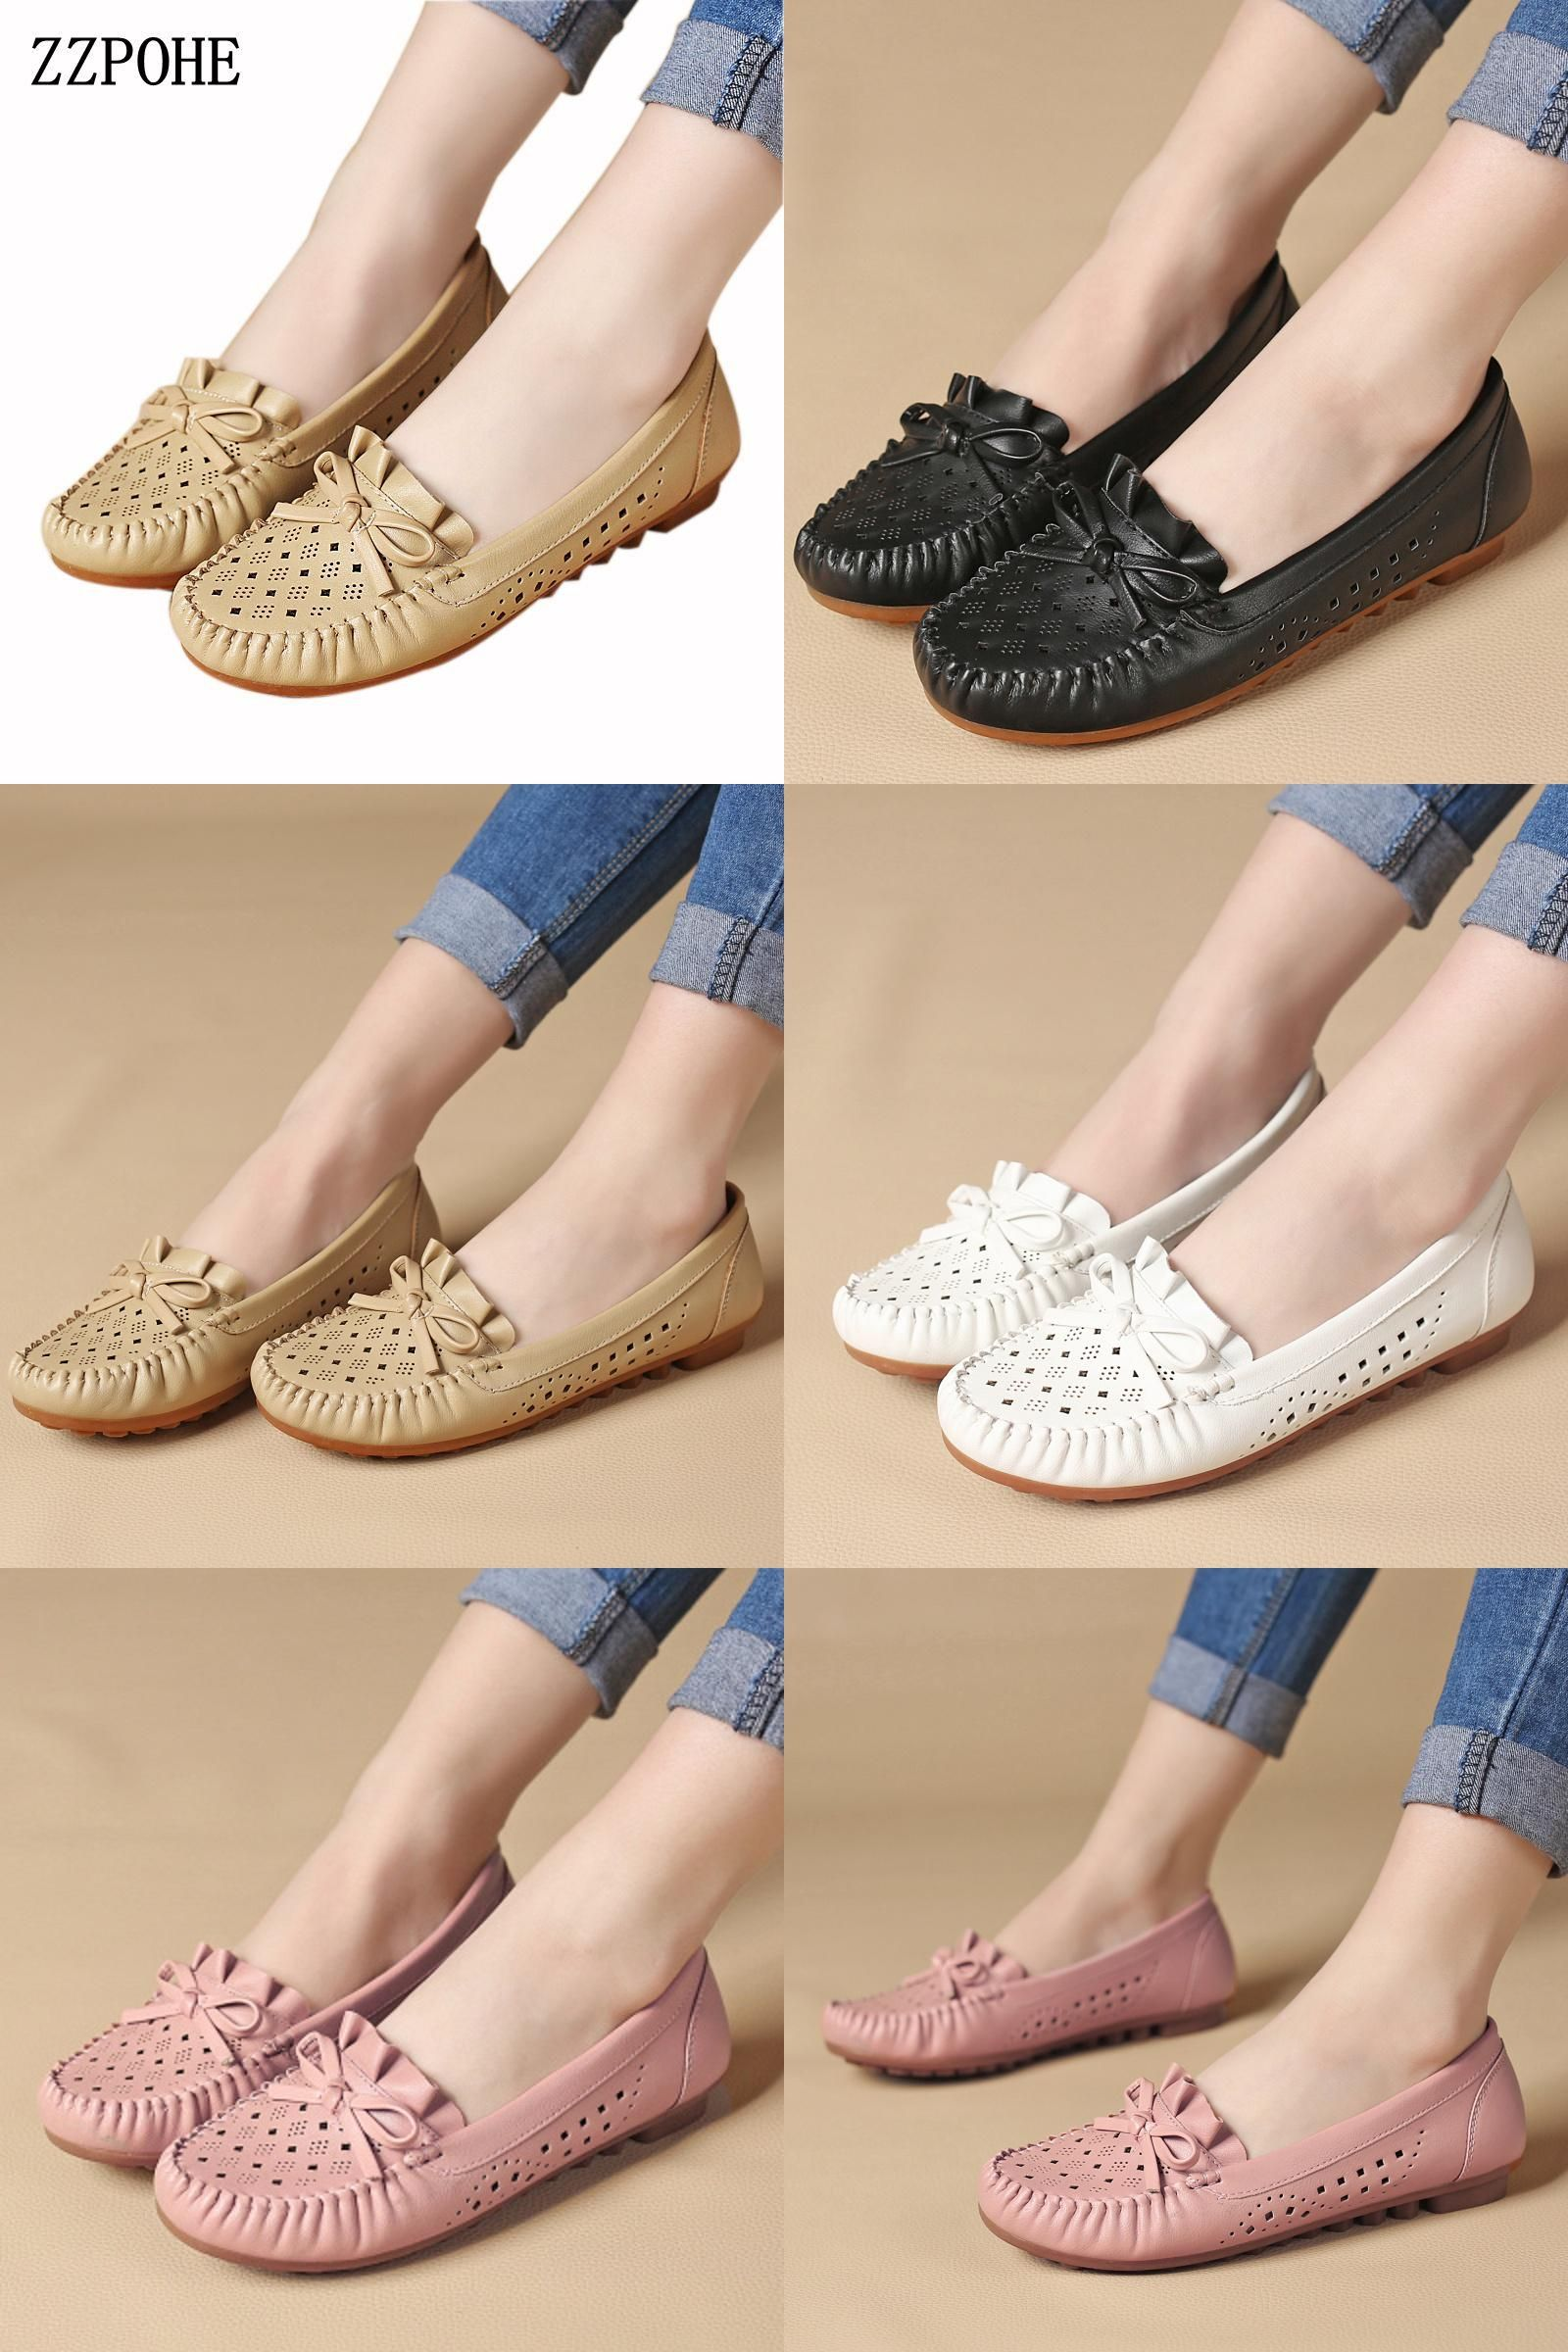 Visit To Buy Zzpohe Spring Women S Shoes Fashion Breathable Mom Casual Shoes Middle Aged Non Slip Comfortabl Women Shoes Flat Shoes Women Fashion Shoes Flats